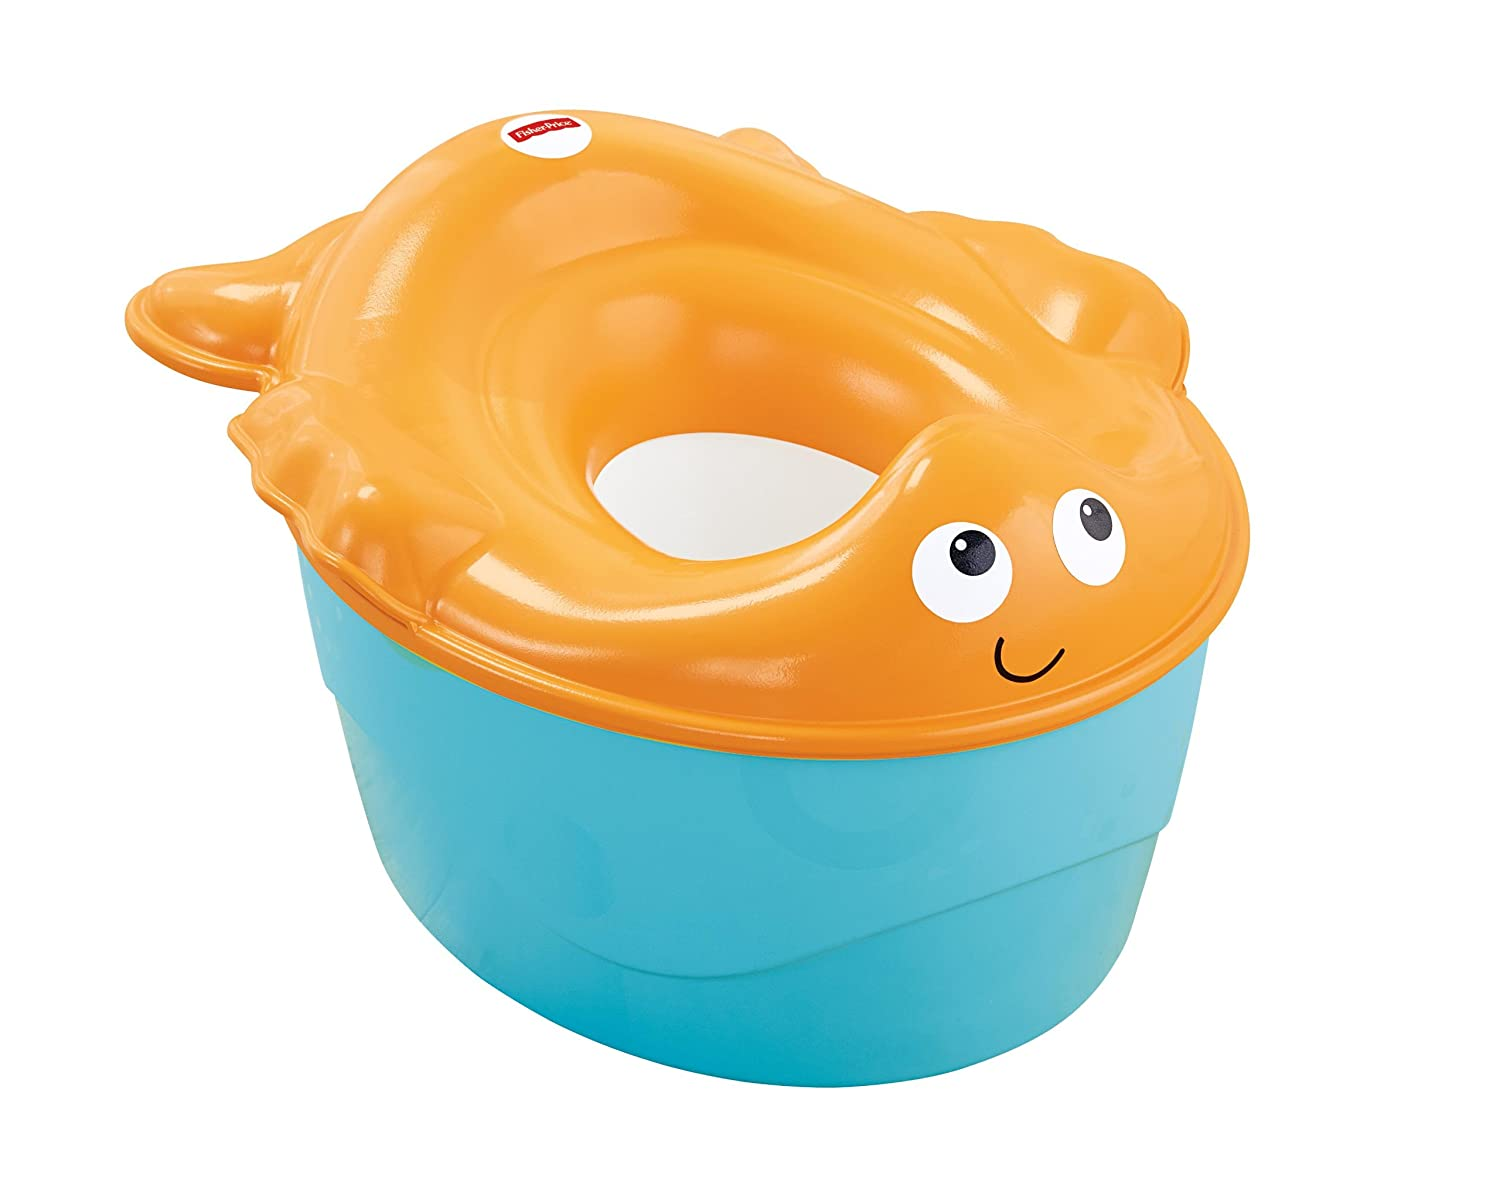 Fisher-Price 3-in-1 Potty, Goldfish Fun (Discontinued by Manufacturer)